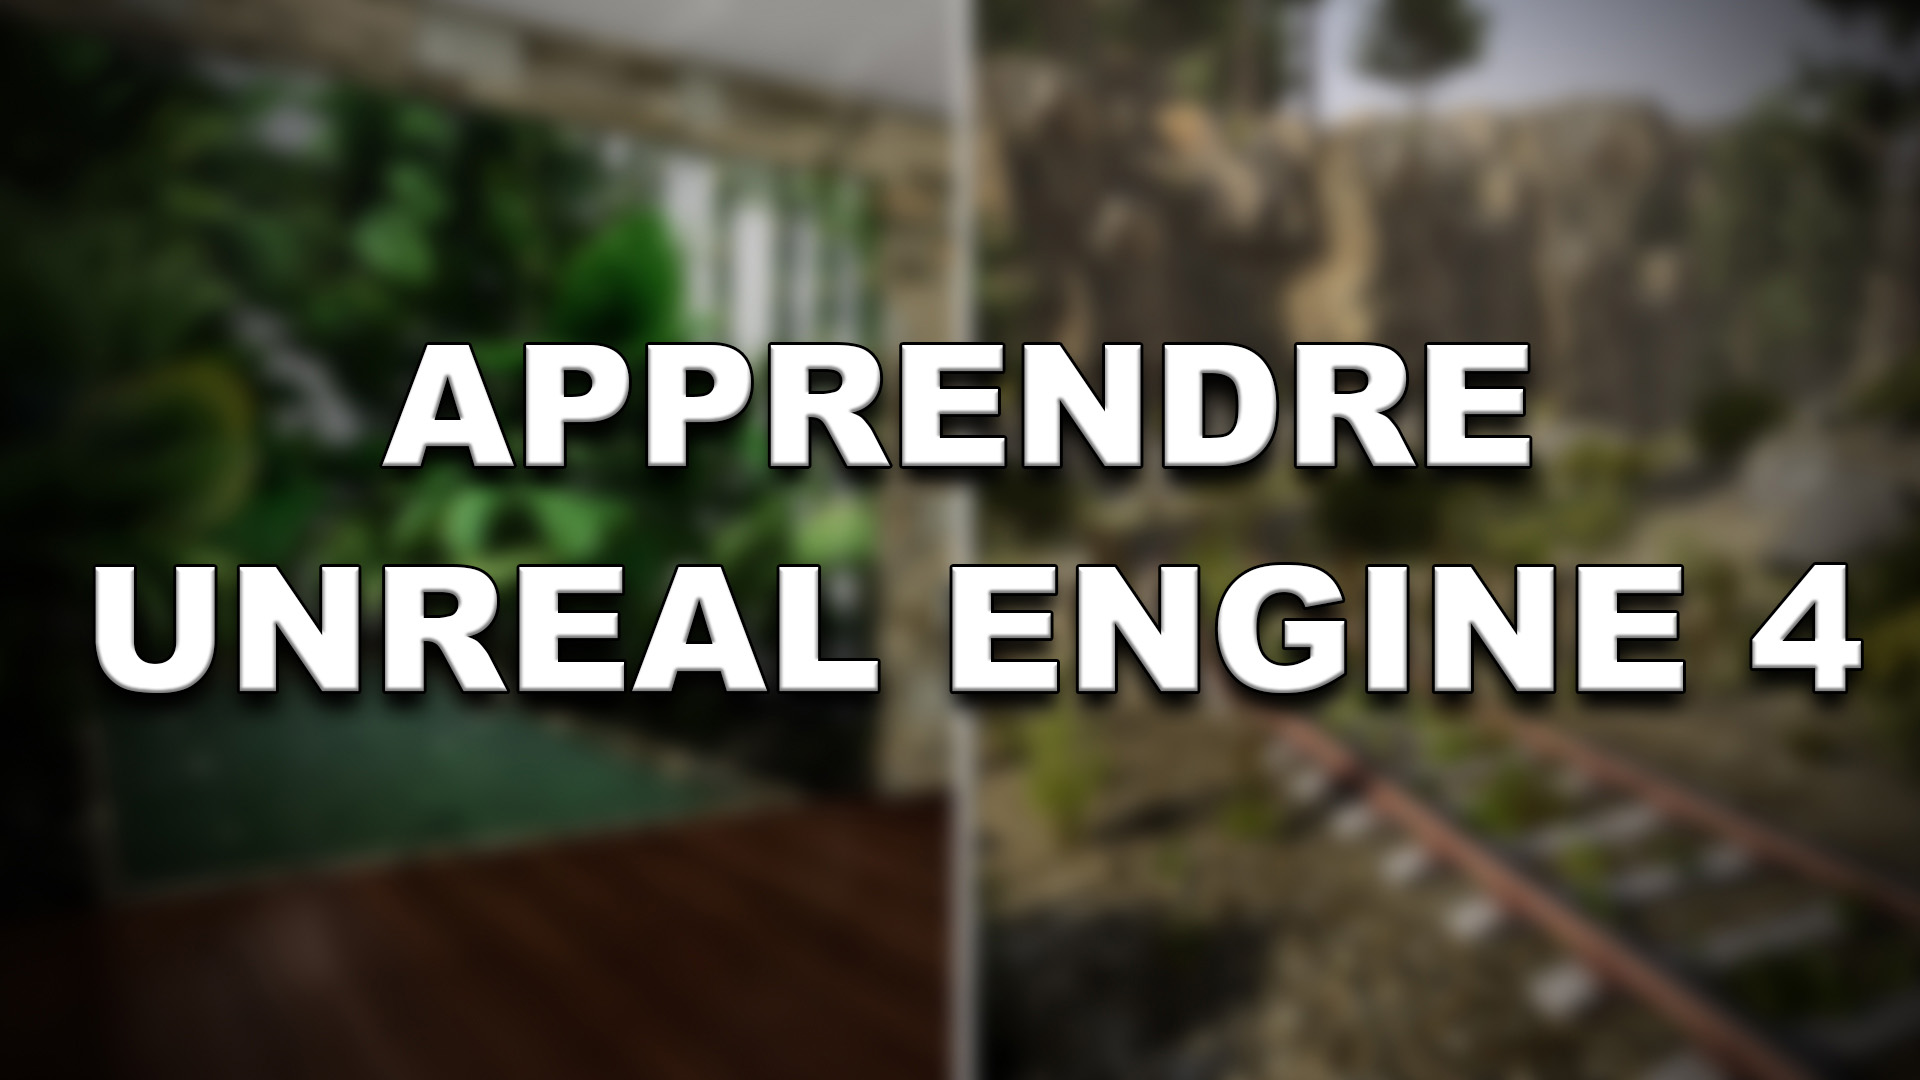 Apprendre l'Unreal Engine 4